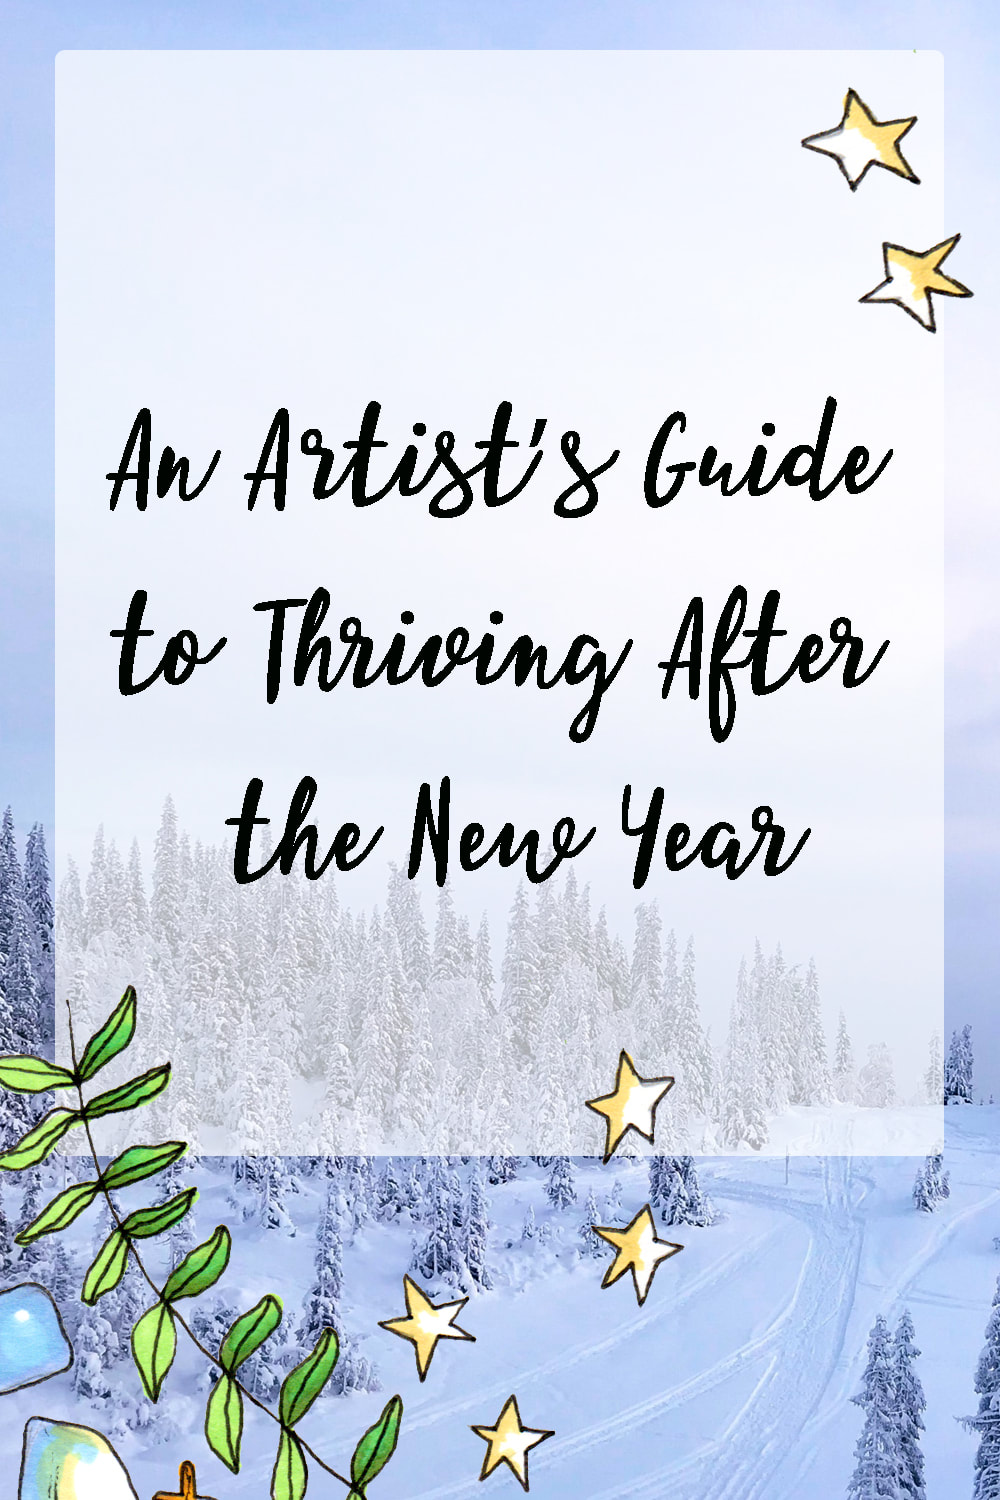 An Artist's Guide to Thriving After the New Year